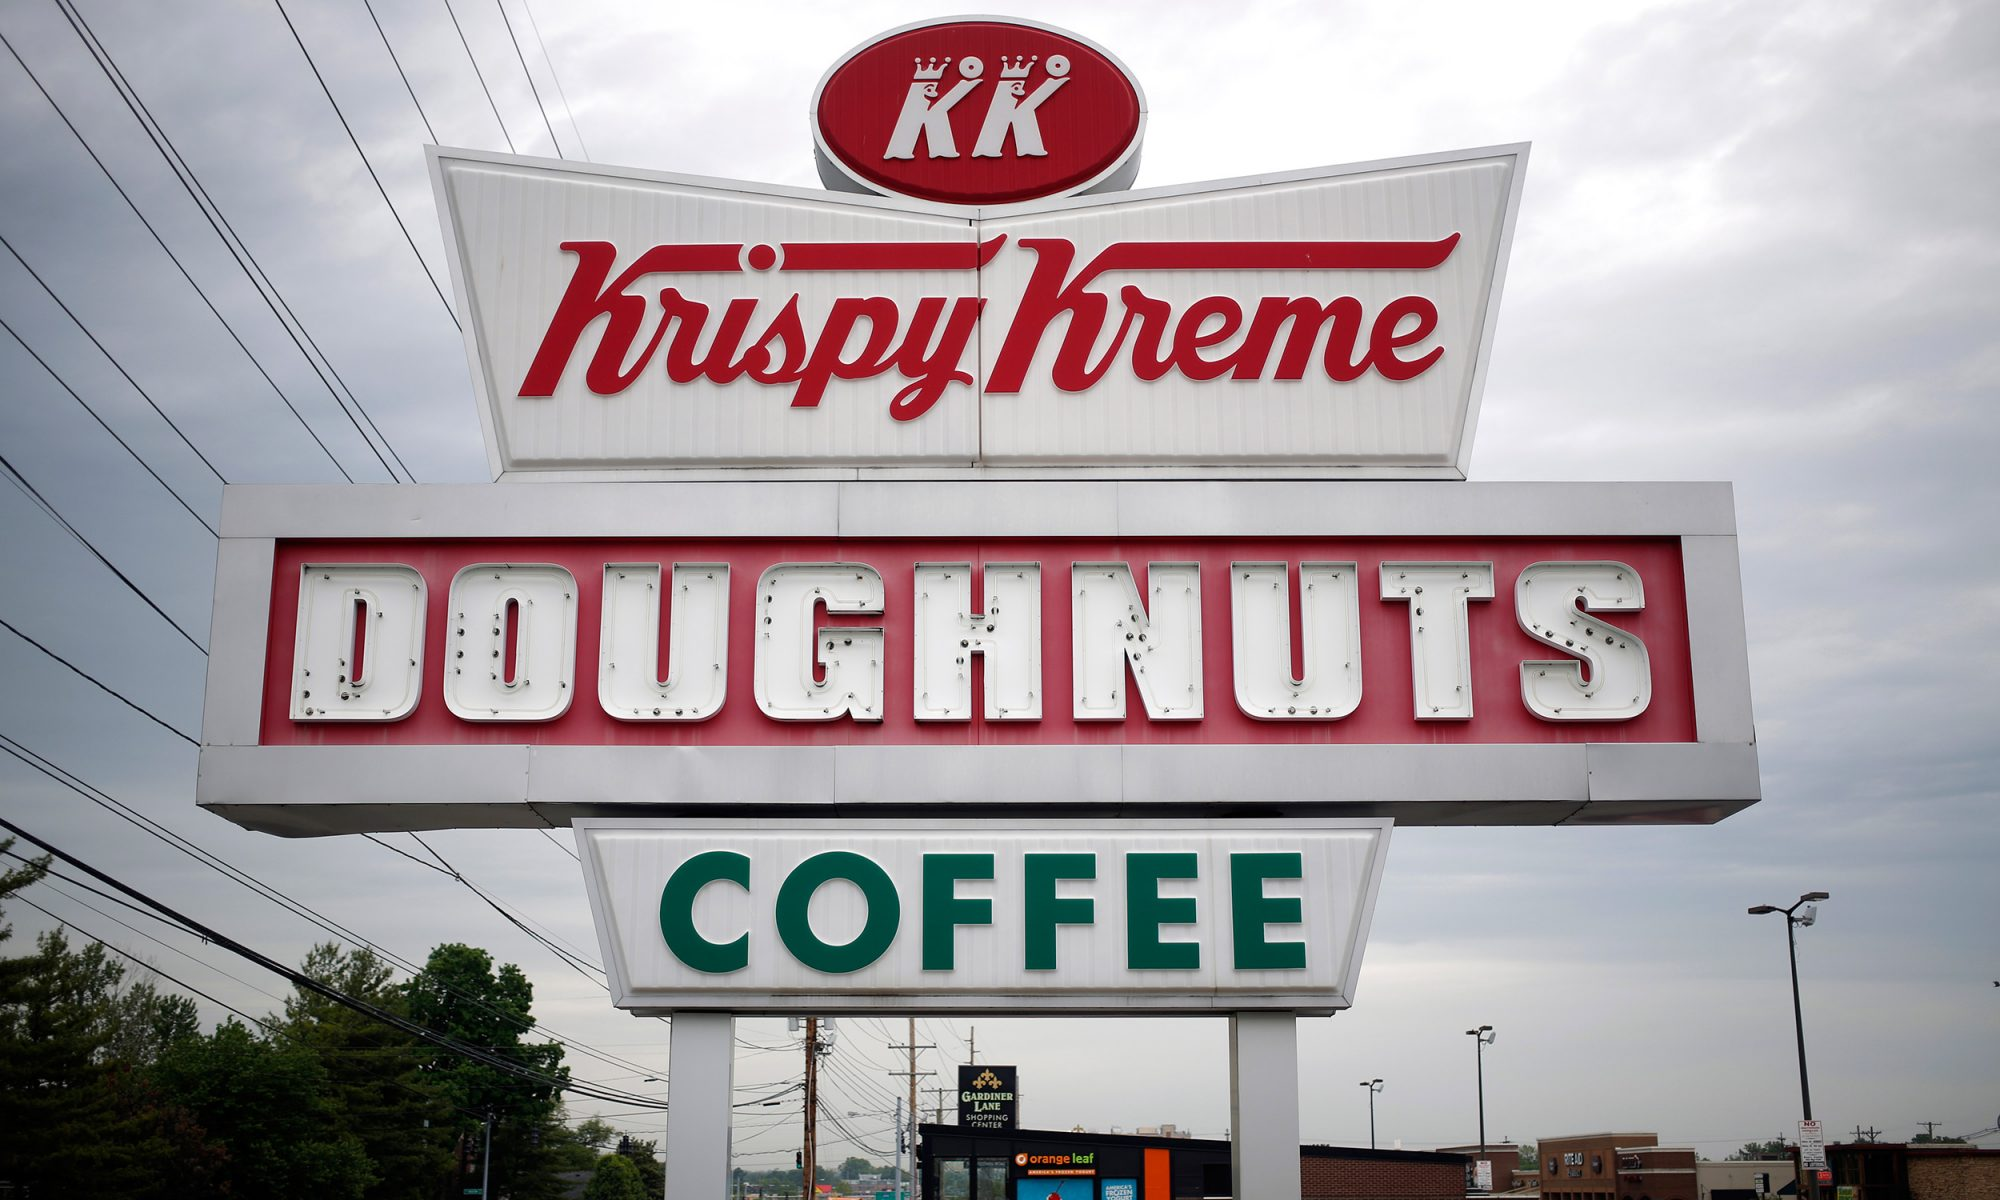 EC: Shaquille O'Neal Is the Proud New Owner of a Krispy Kreme